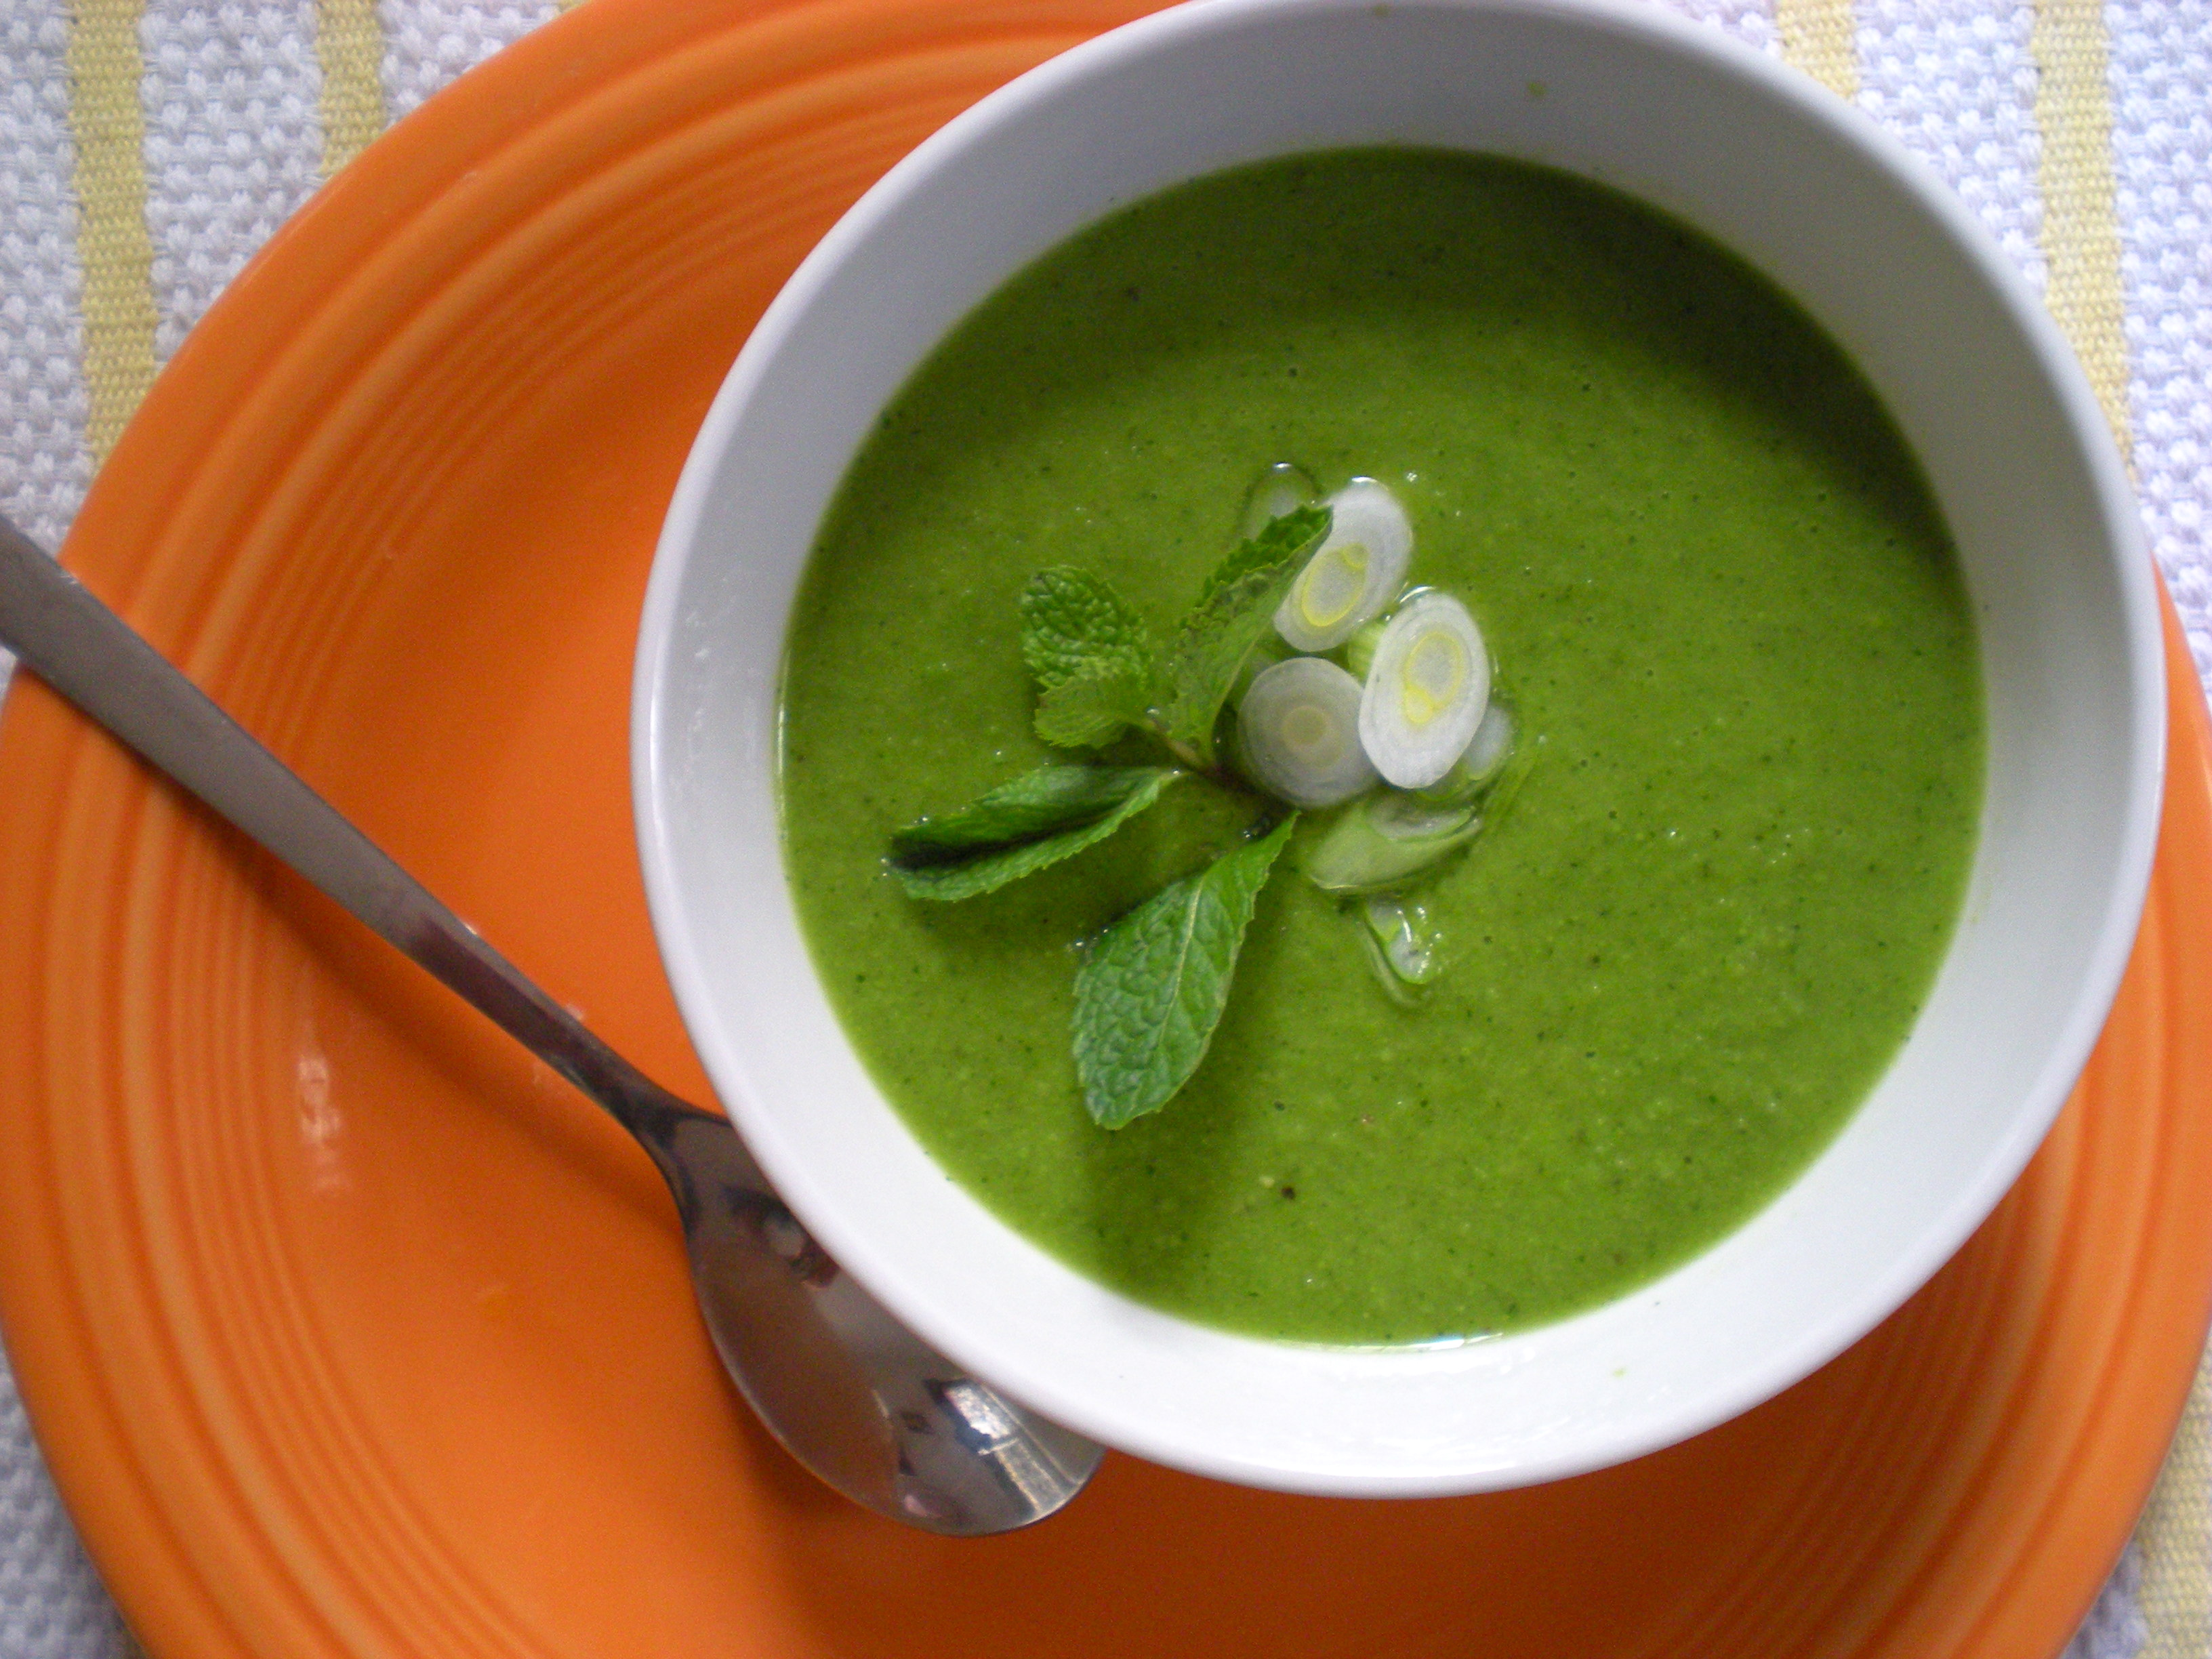 Fresh Pea Soup with Mint | A Girl's Gotta Eat